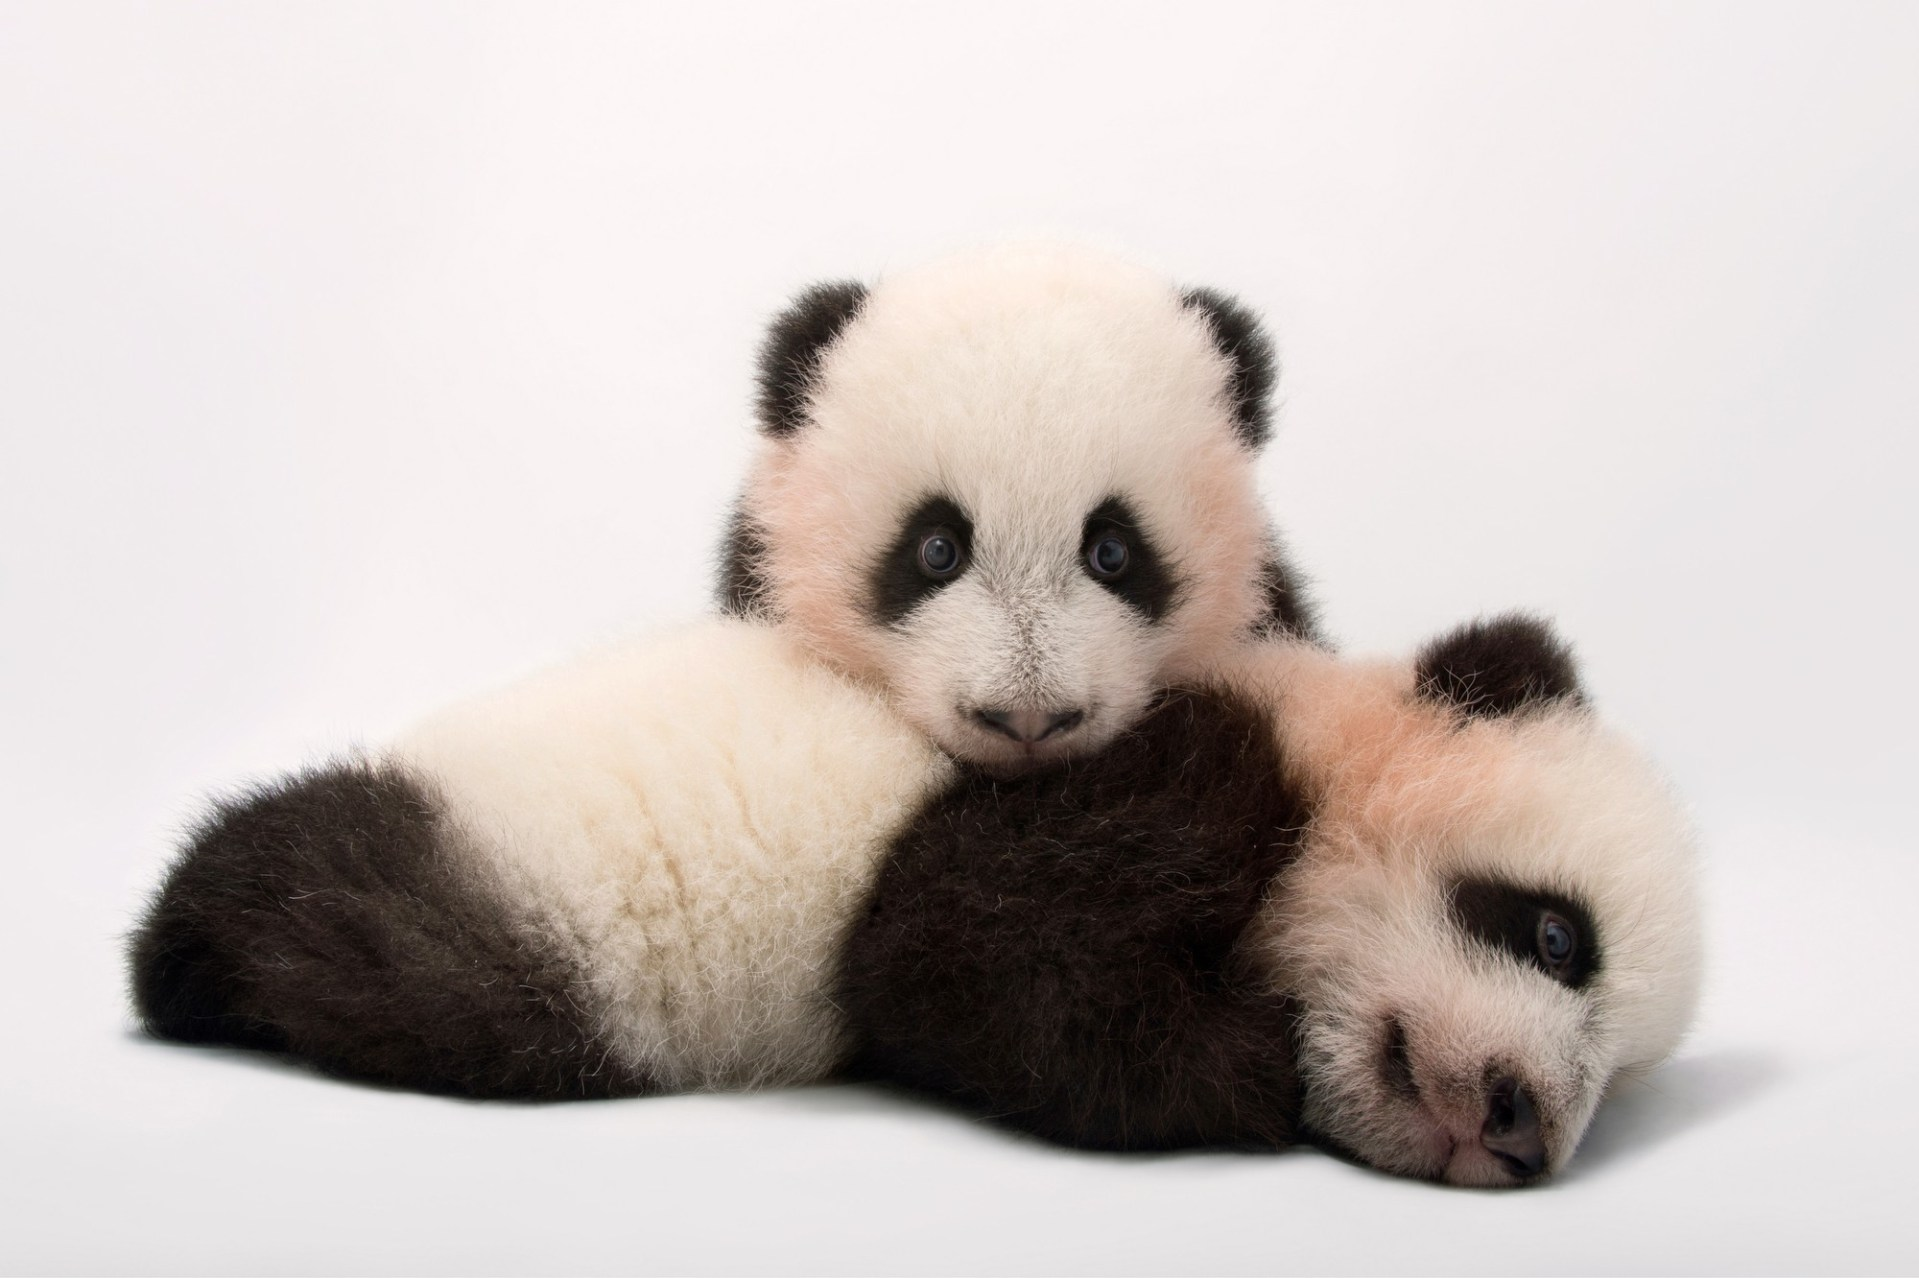 Mei Lun and Mei Huan, the twin giant panda cubs (Ailuropoda melanoleuca) at Zoo Atlanta.